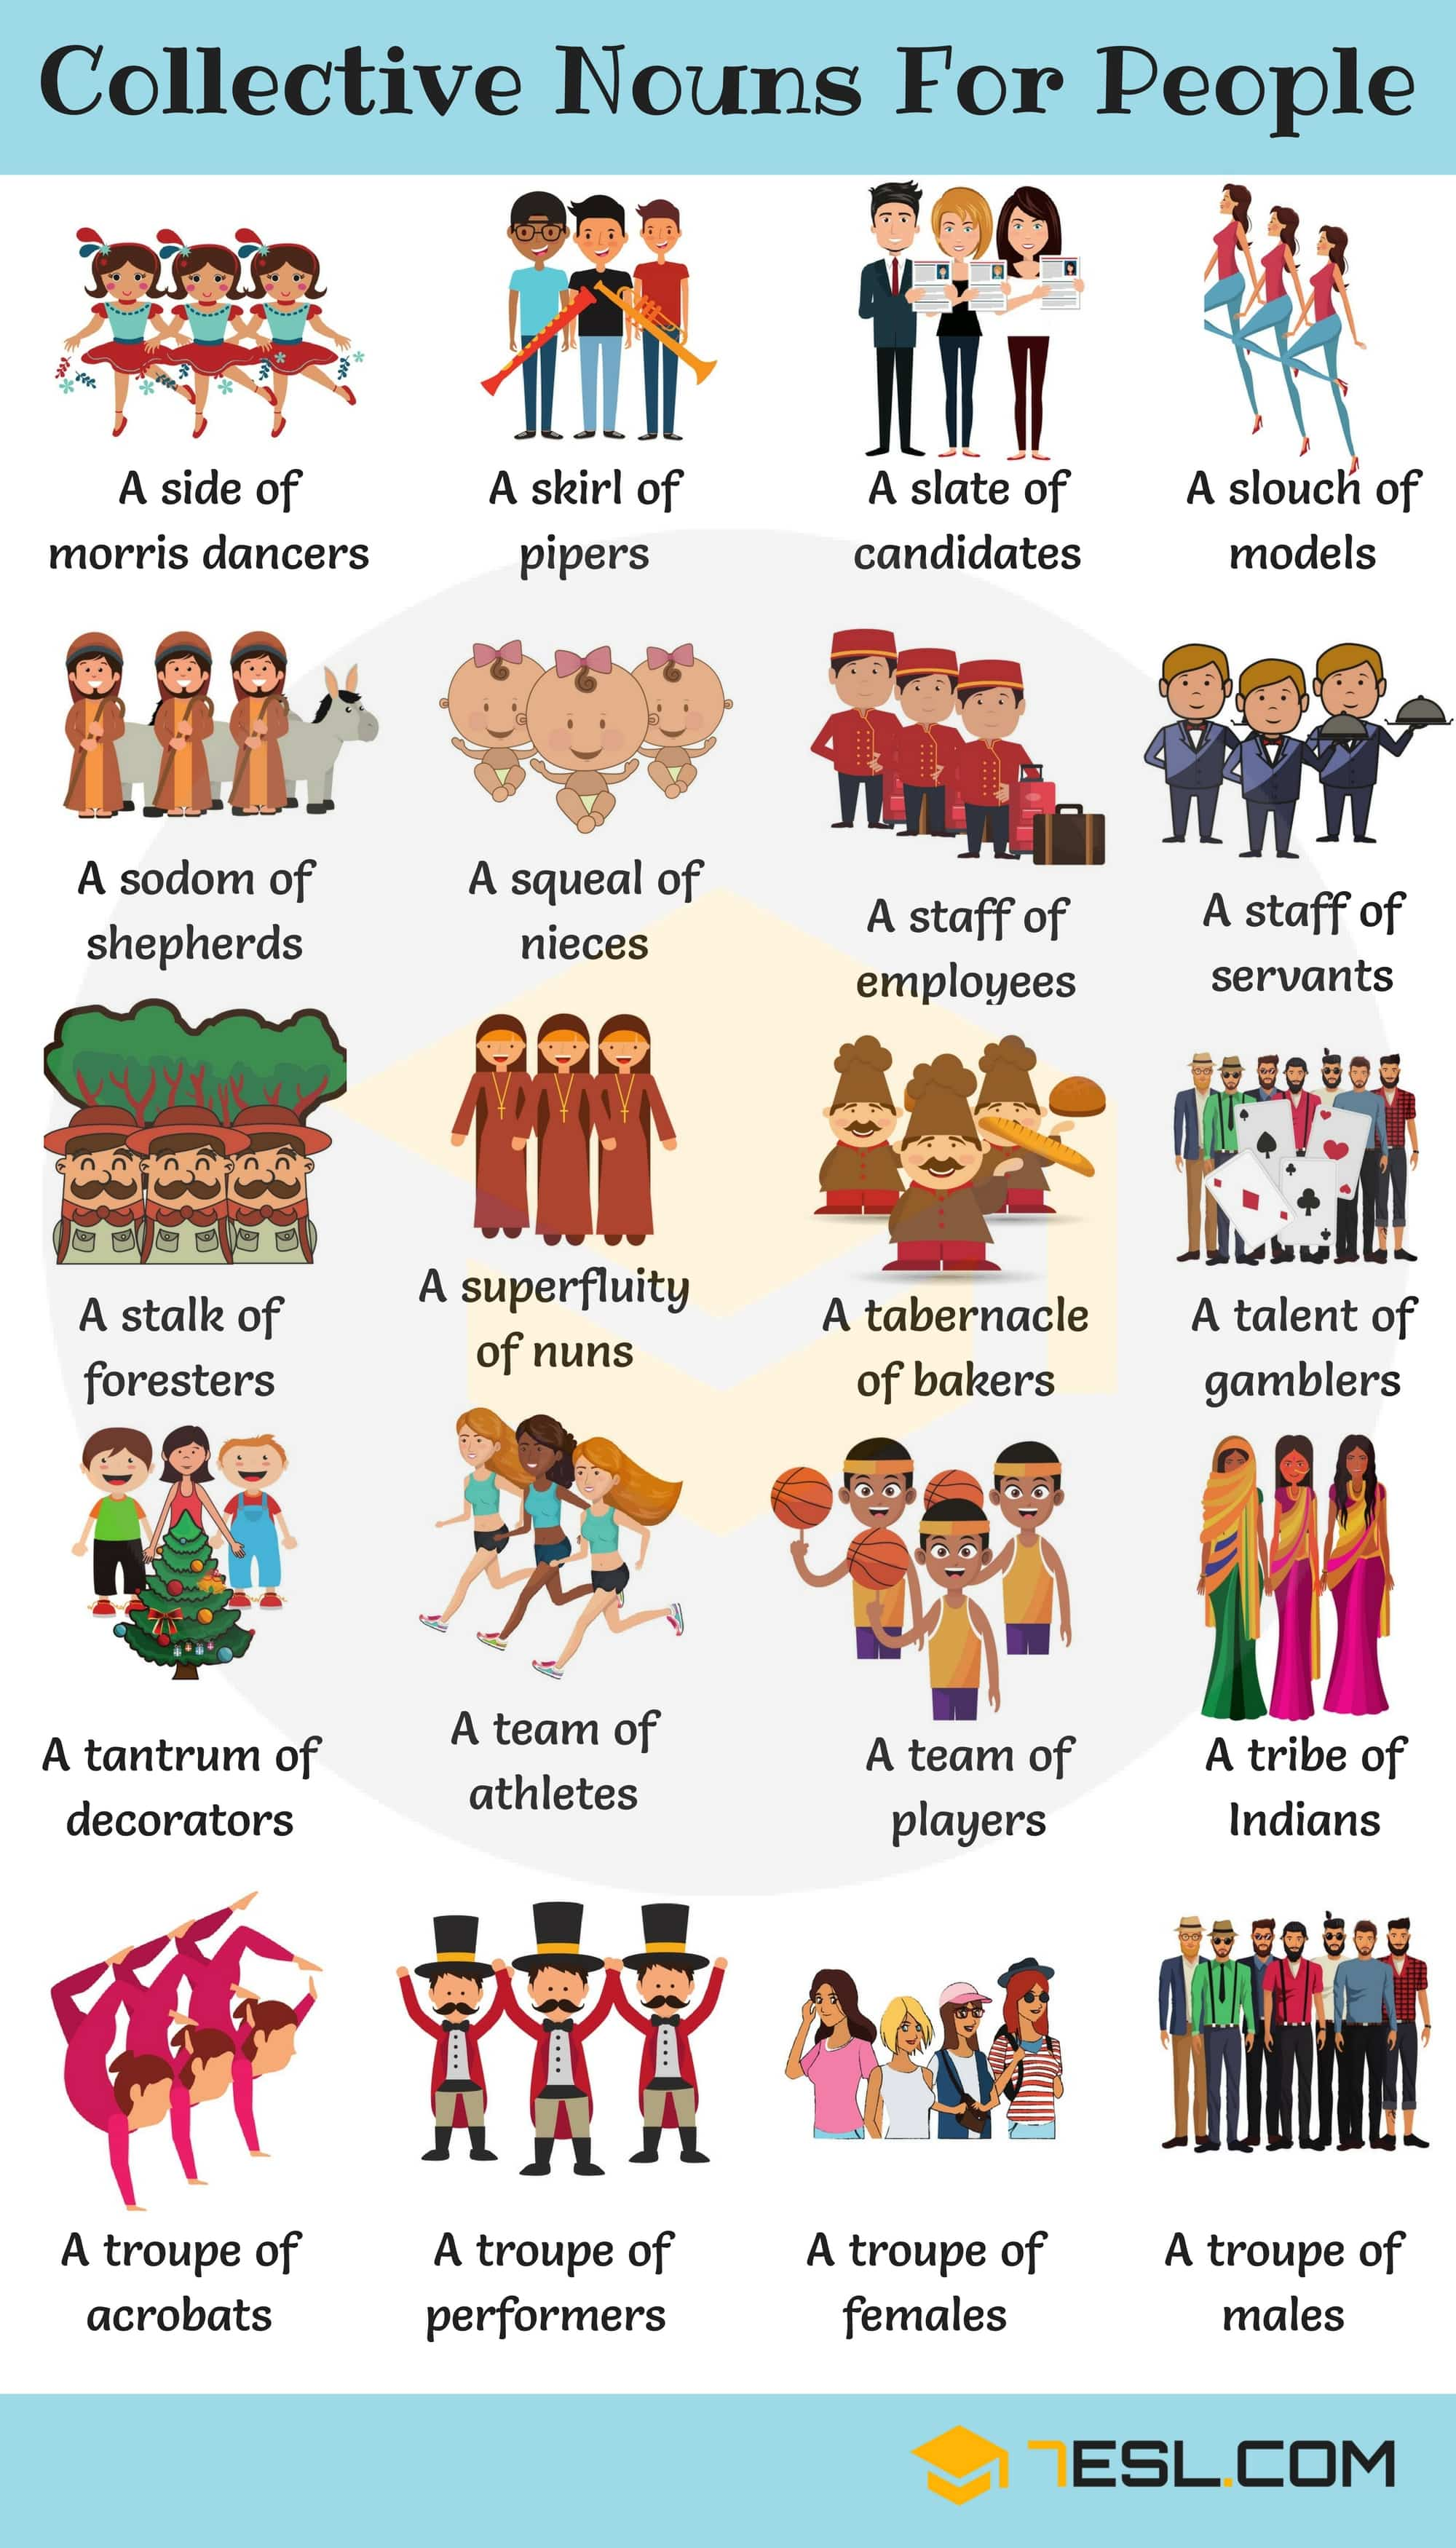 Groups Of People 200 Useful Collective Nouns For People